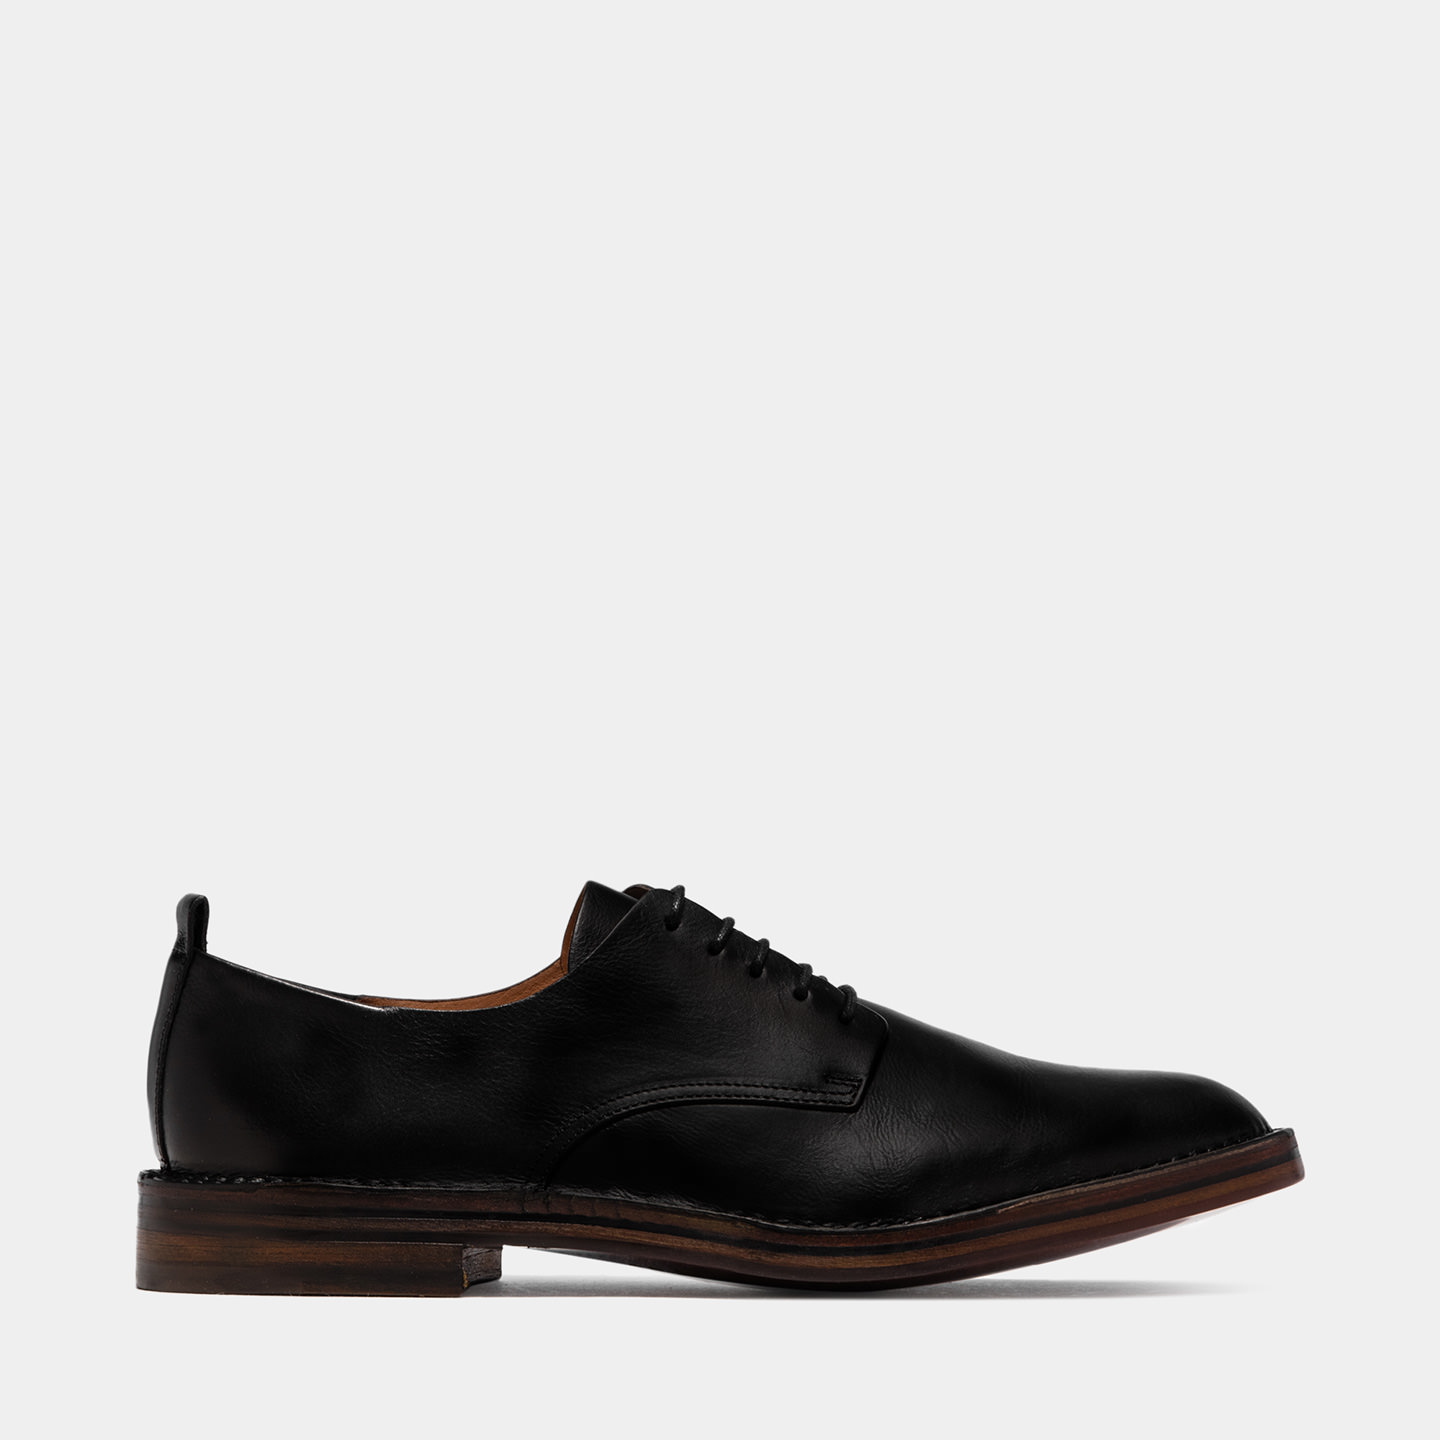 BUTTERO: BLACK LEATHER LACE-UP IDEA SHOES